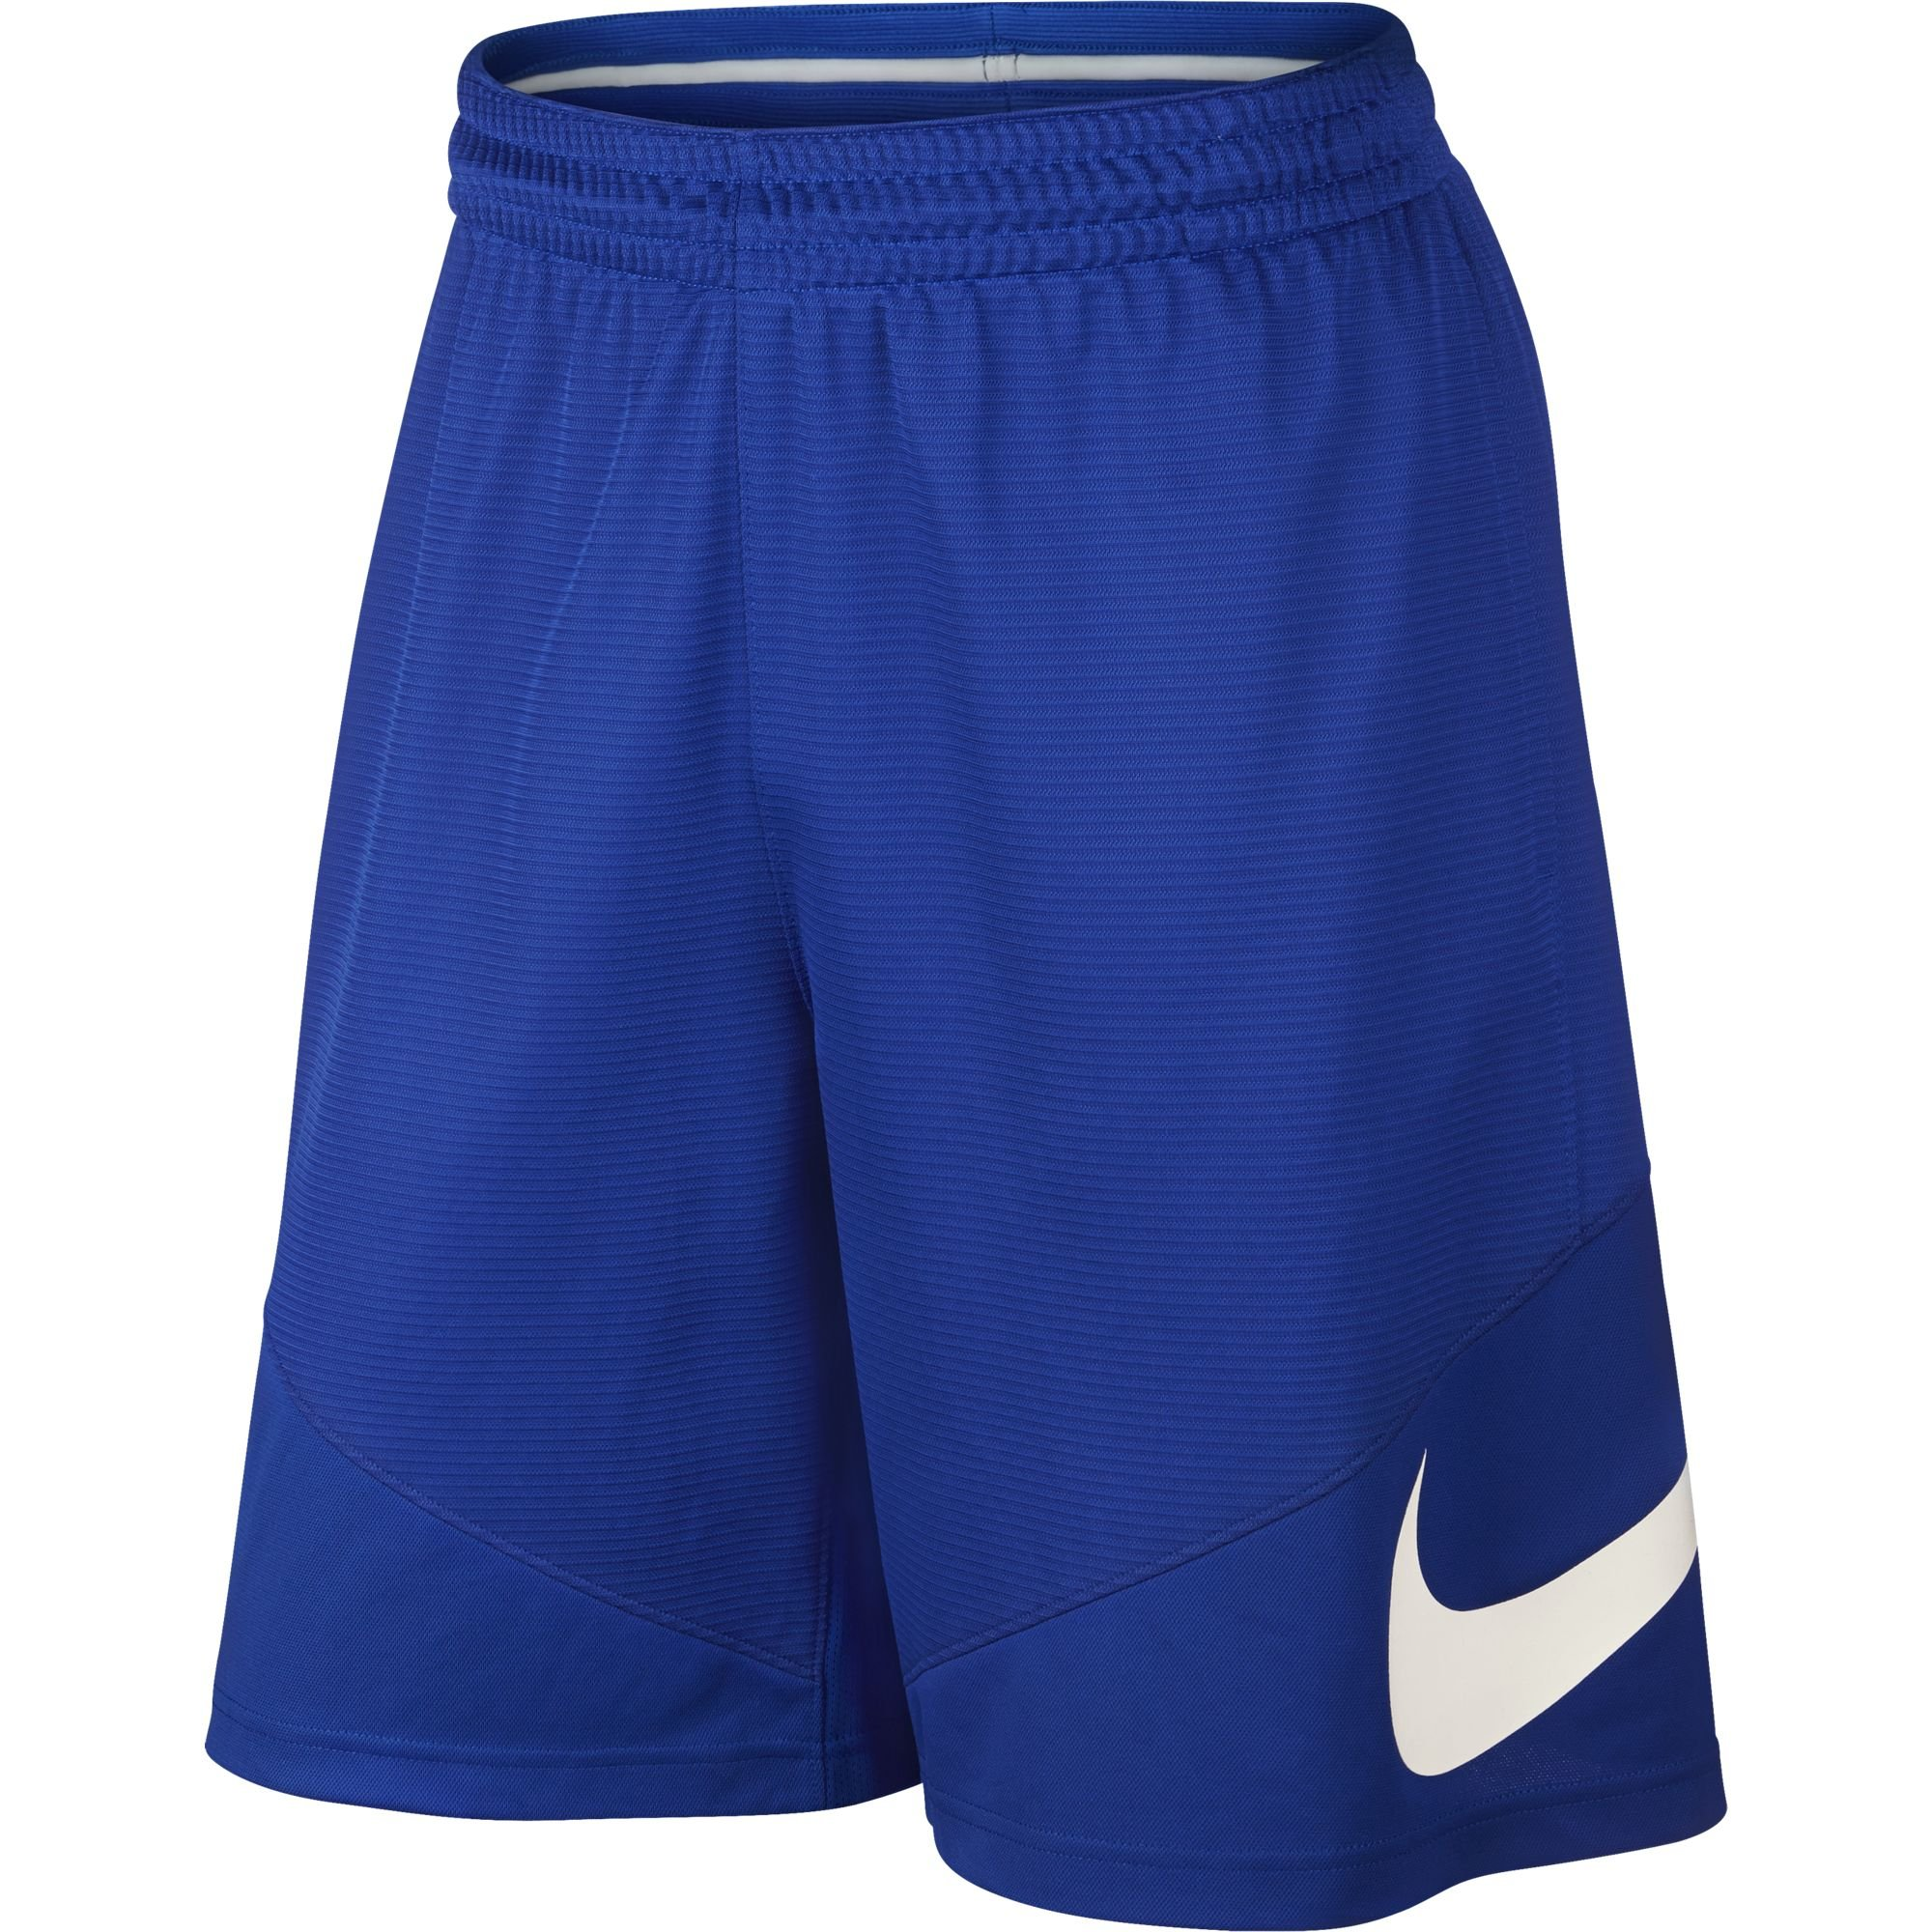 NIKE Men's Basketball Shorts, Game Royal/Game Royal/Game Royal/White, Small